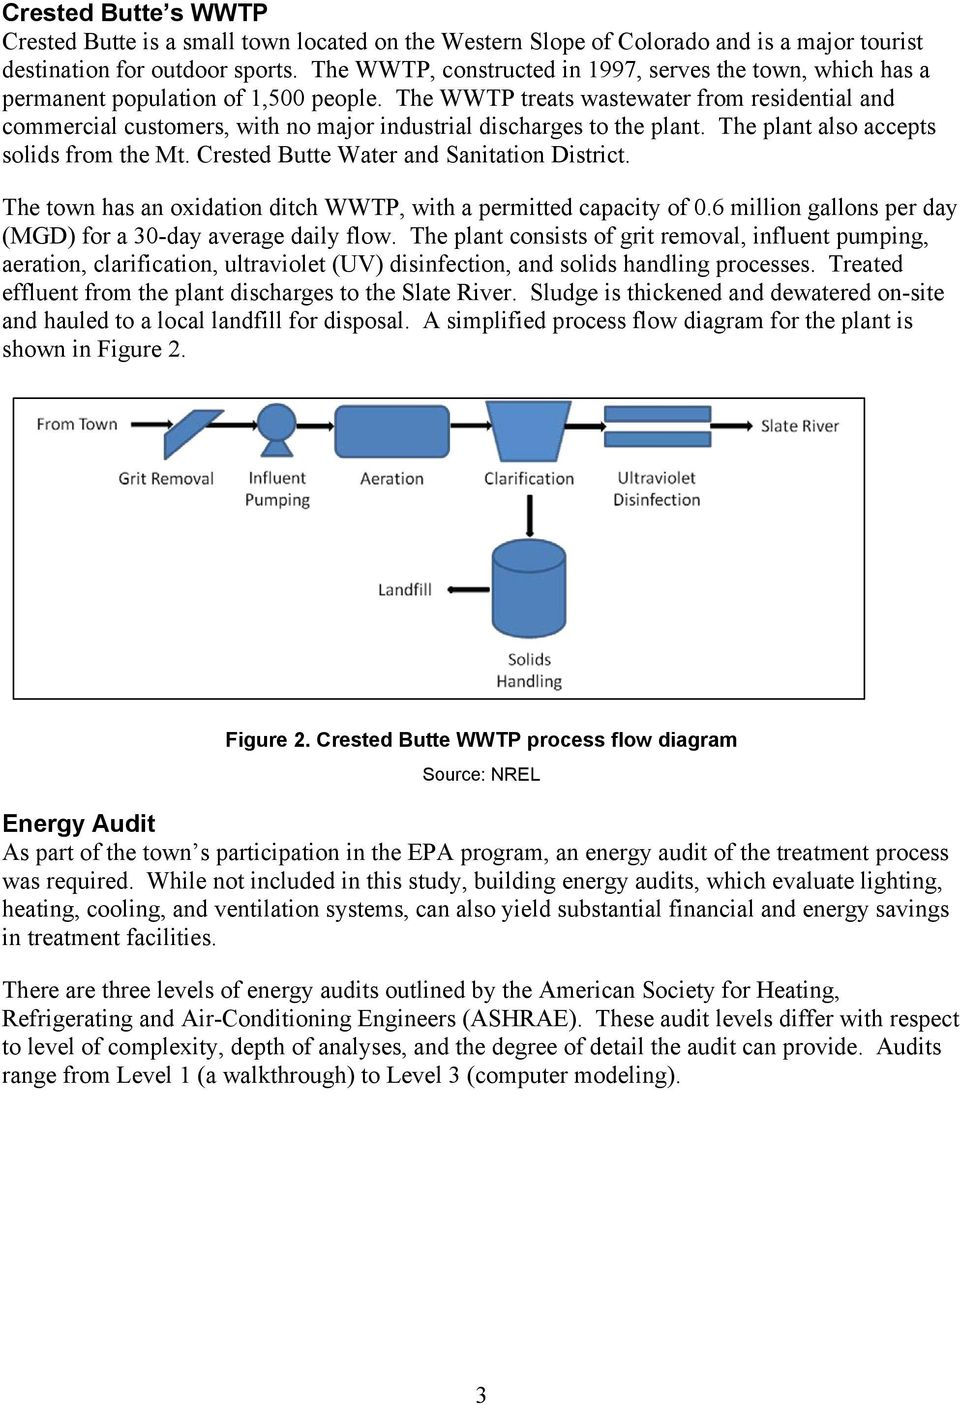 Energy Efficiency Strategies For Municipal Wastewater Treatment Process Flow Diagram Wwtp The Treats From Residential And Commercial Customers With No Major Industrial Discharges To